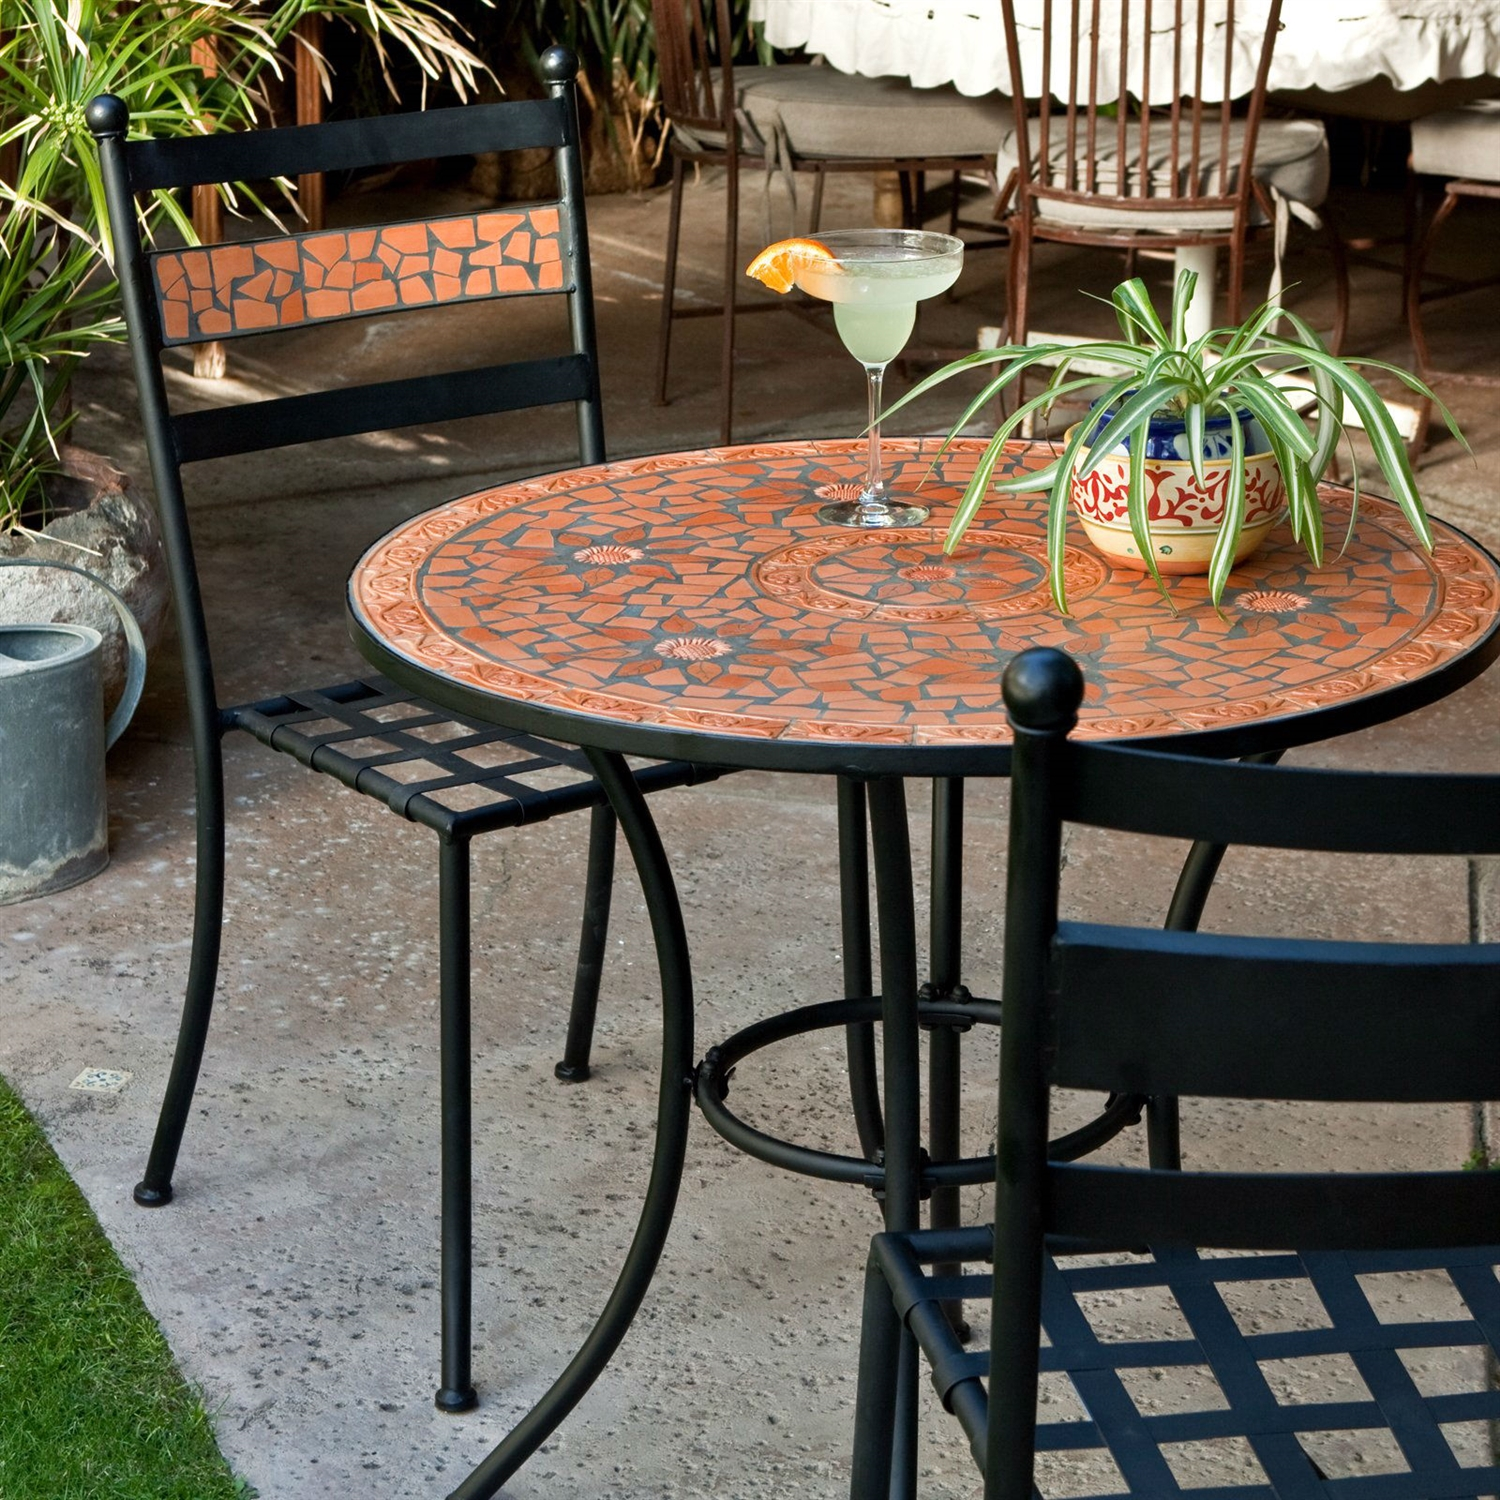 3 piece black metal patio bistro set with terra cotta. Black Bedroom Furniture Sets. Home Design Ideas